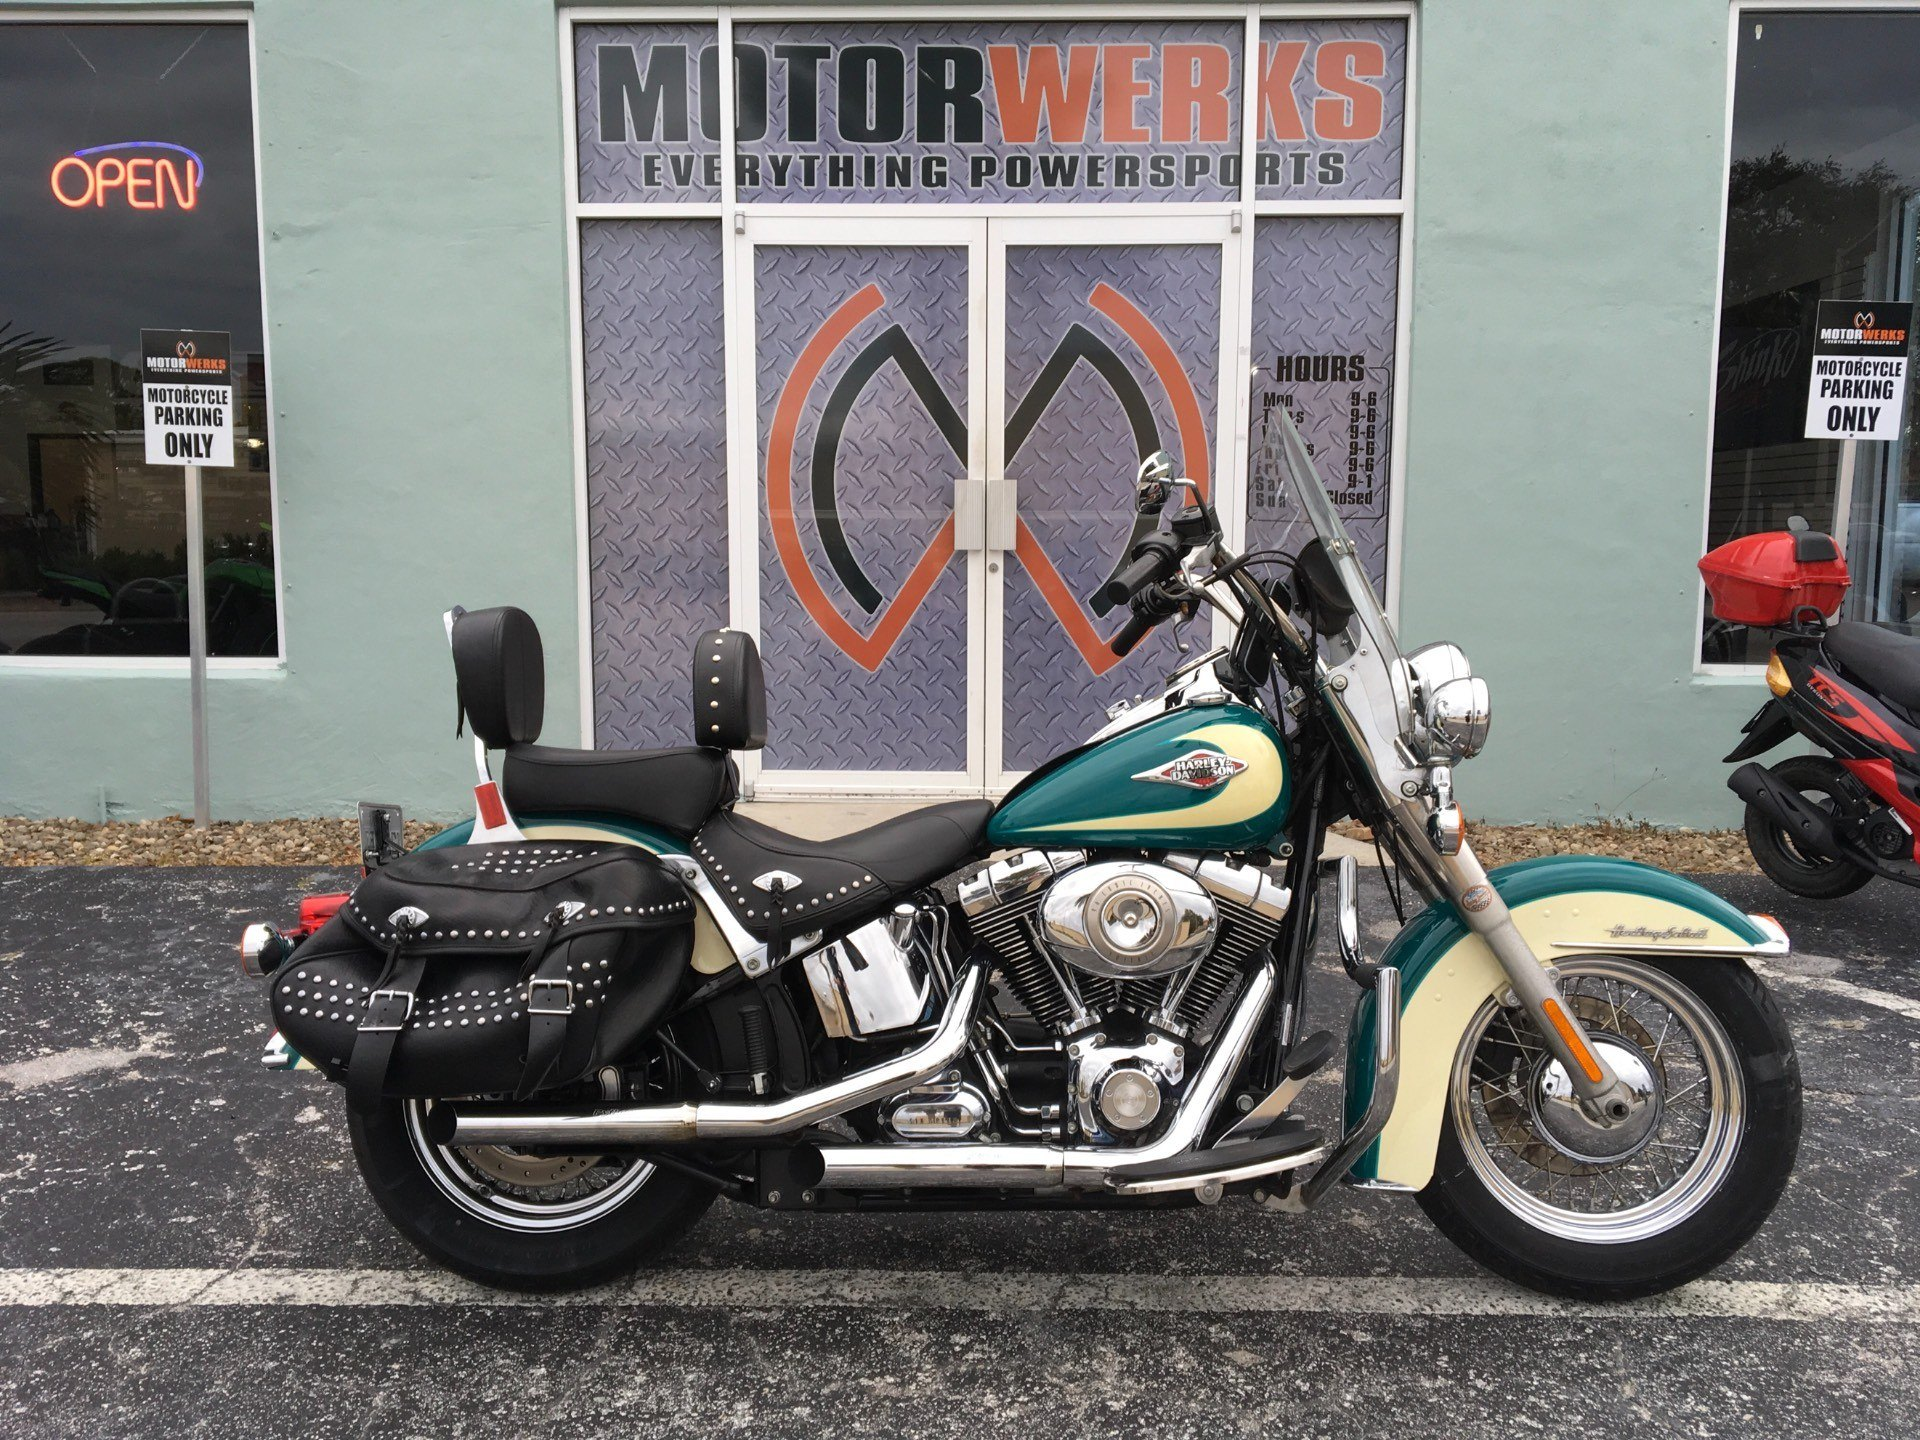 2009 Harley-Davidson Heritage softail classic in Cocoa, Florida - Photo 1